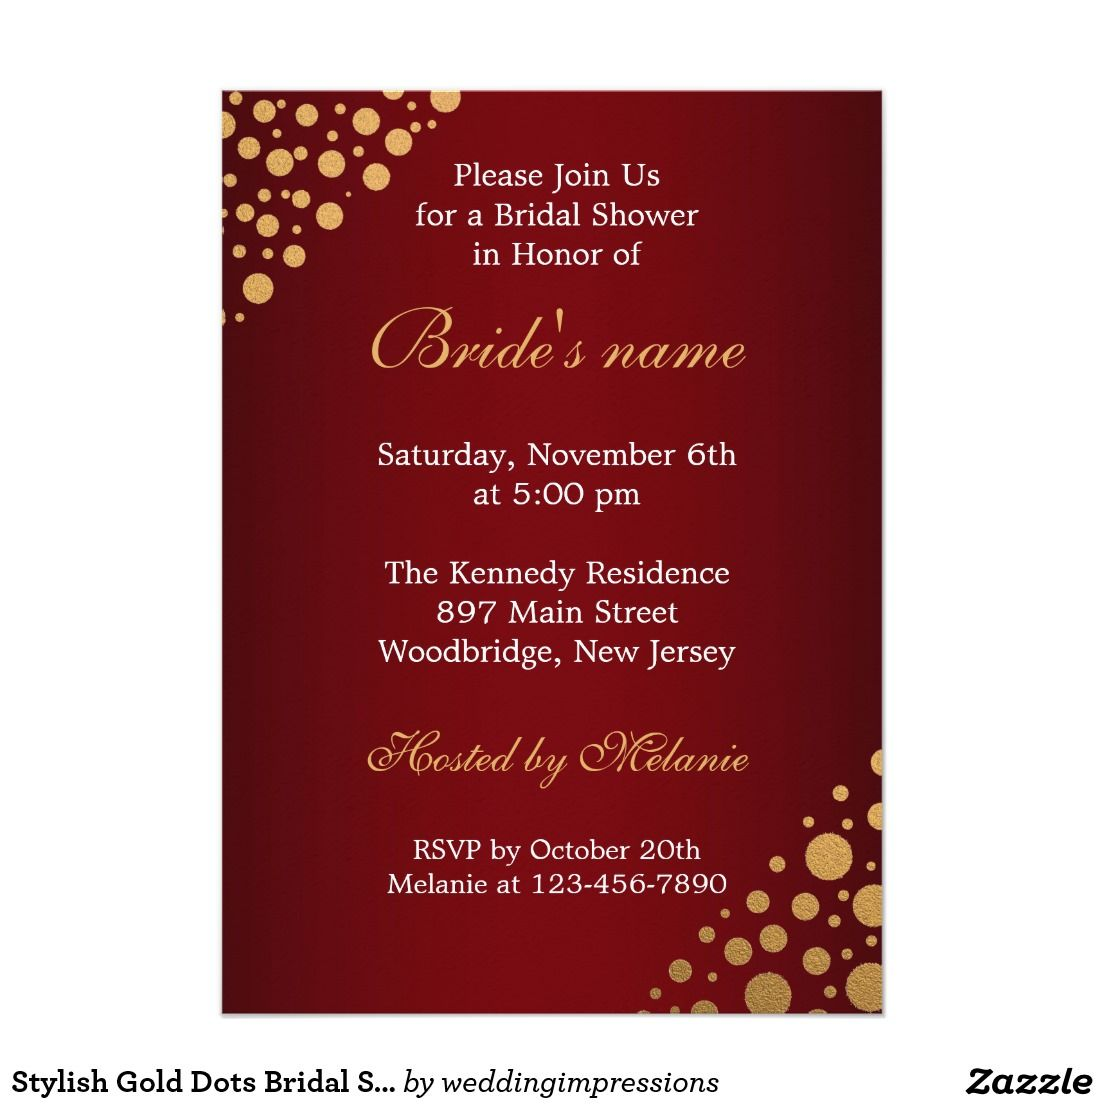 Stylish Gold Dots Bridal Shower Invitation | Red | Gold dots, Shower ...